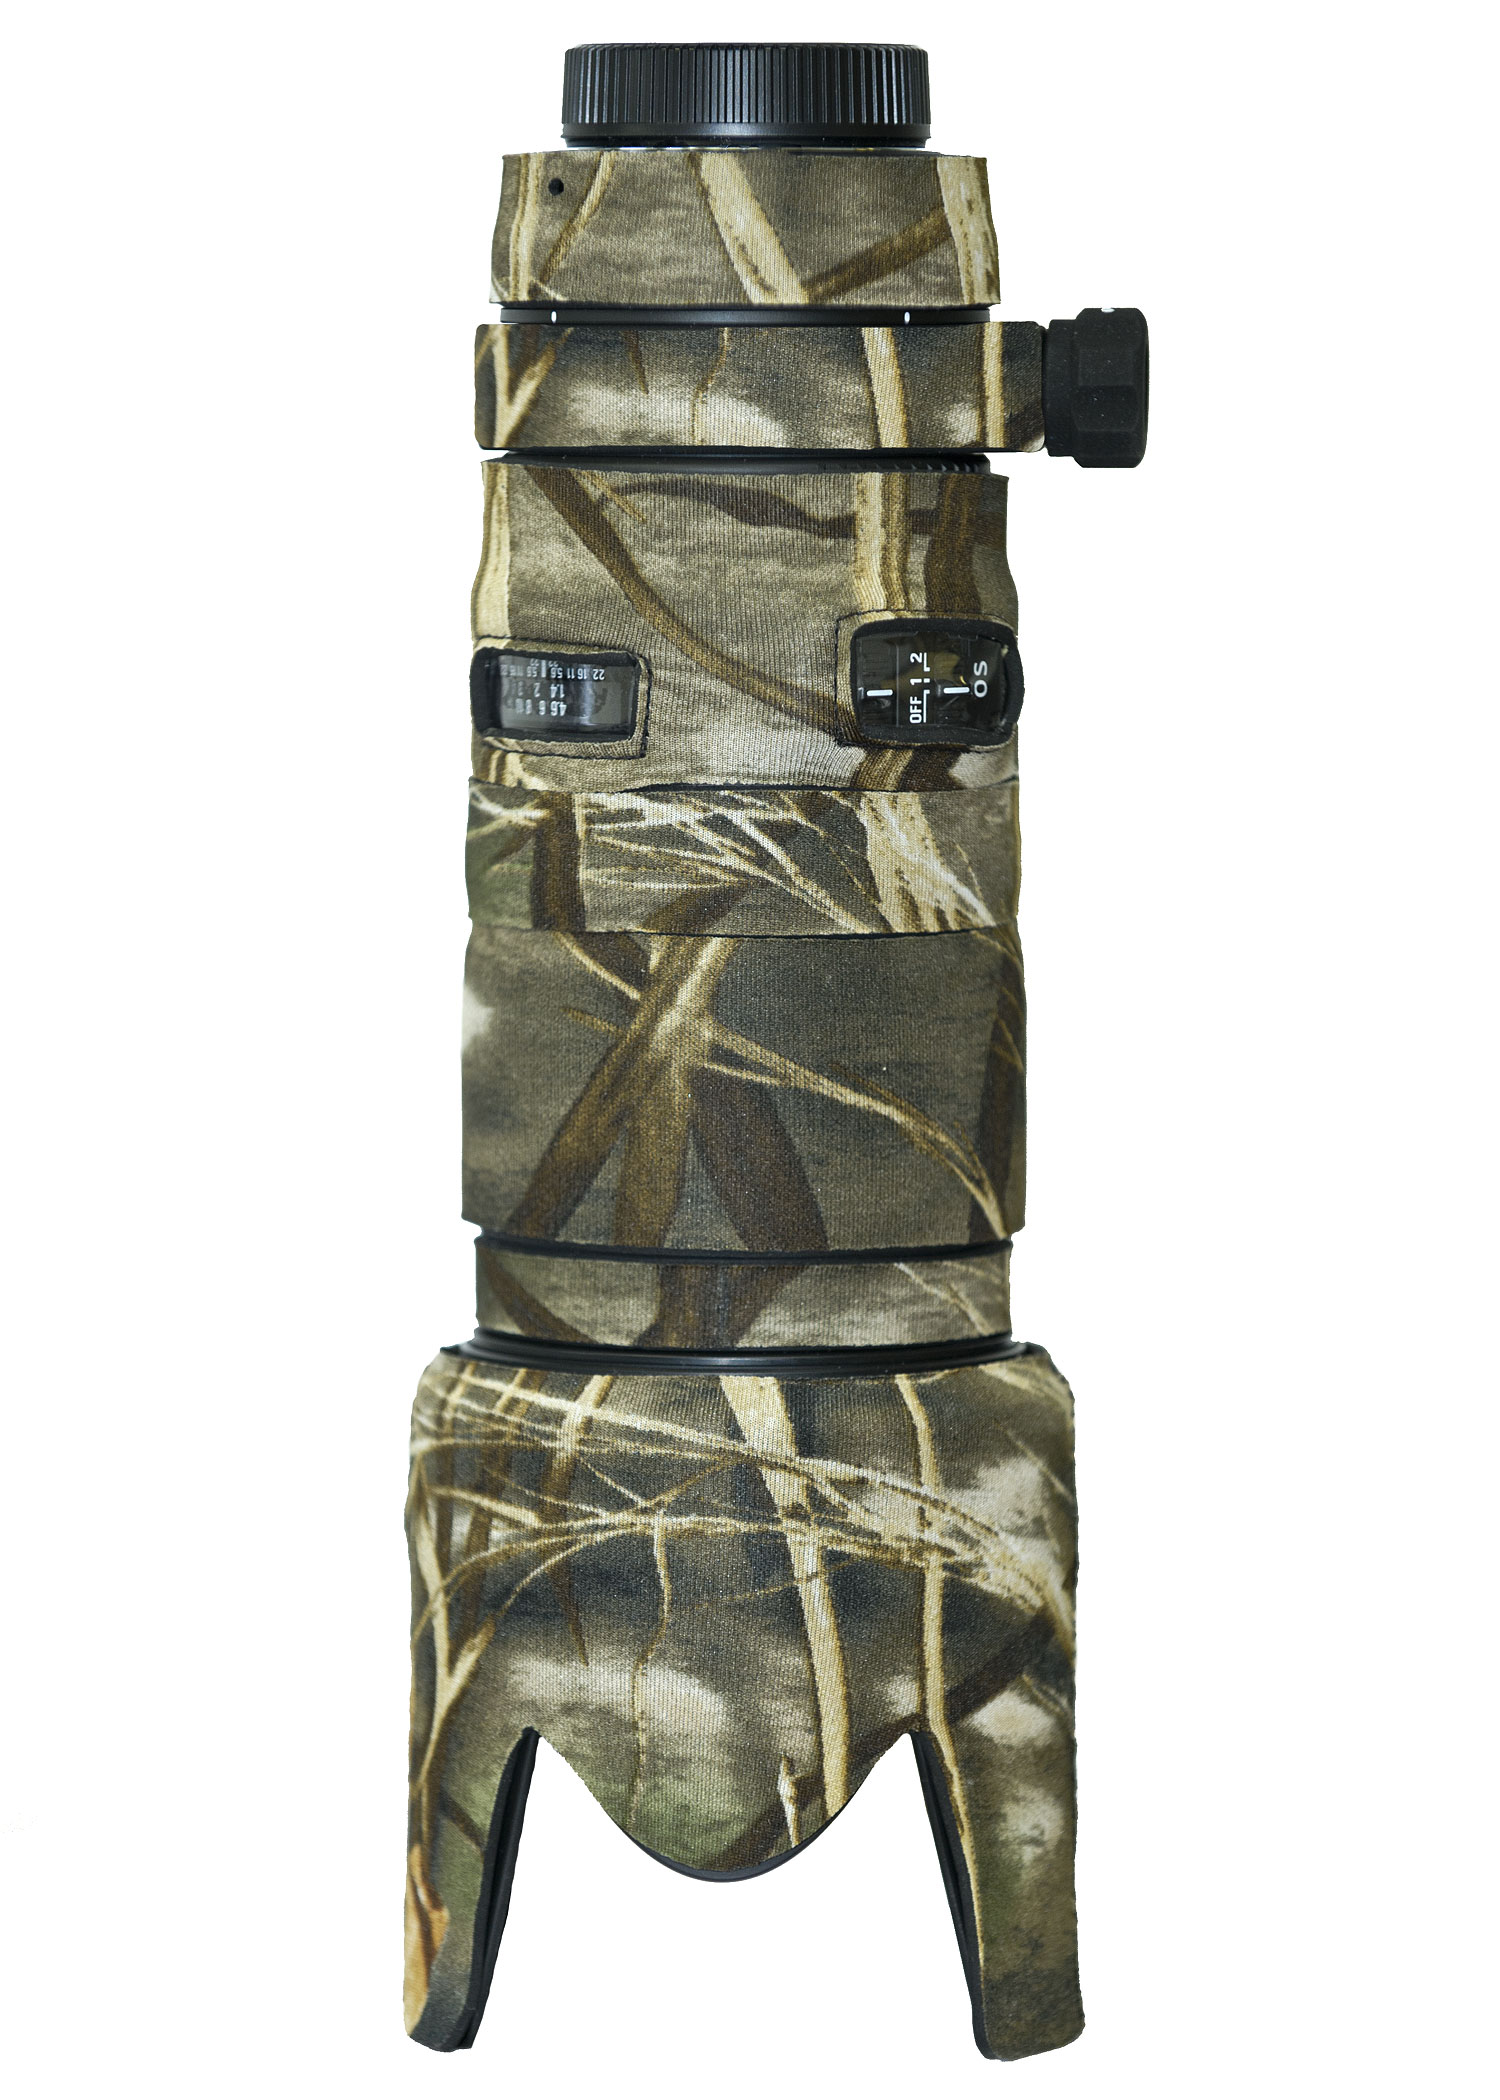 LensCoat lc200400m4 Lens Cover for Canon 200-400 IS f4 Realtree Max4 HD